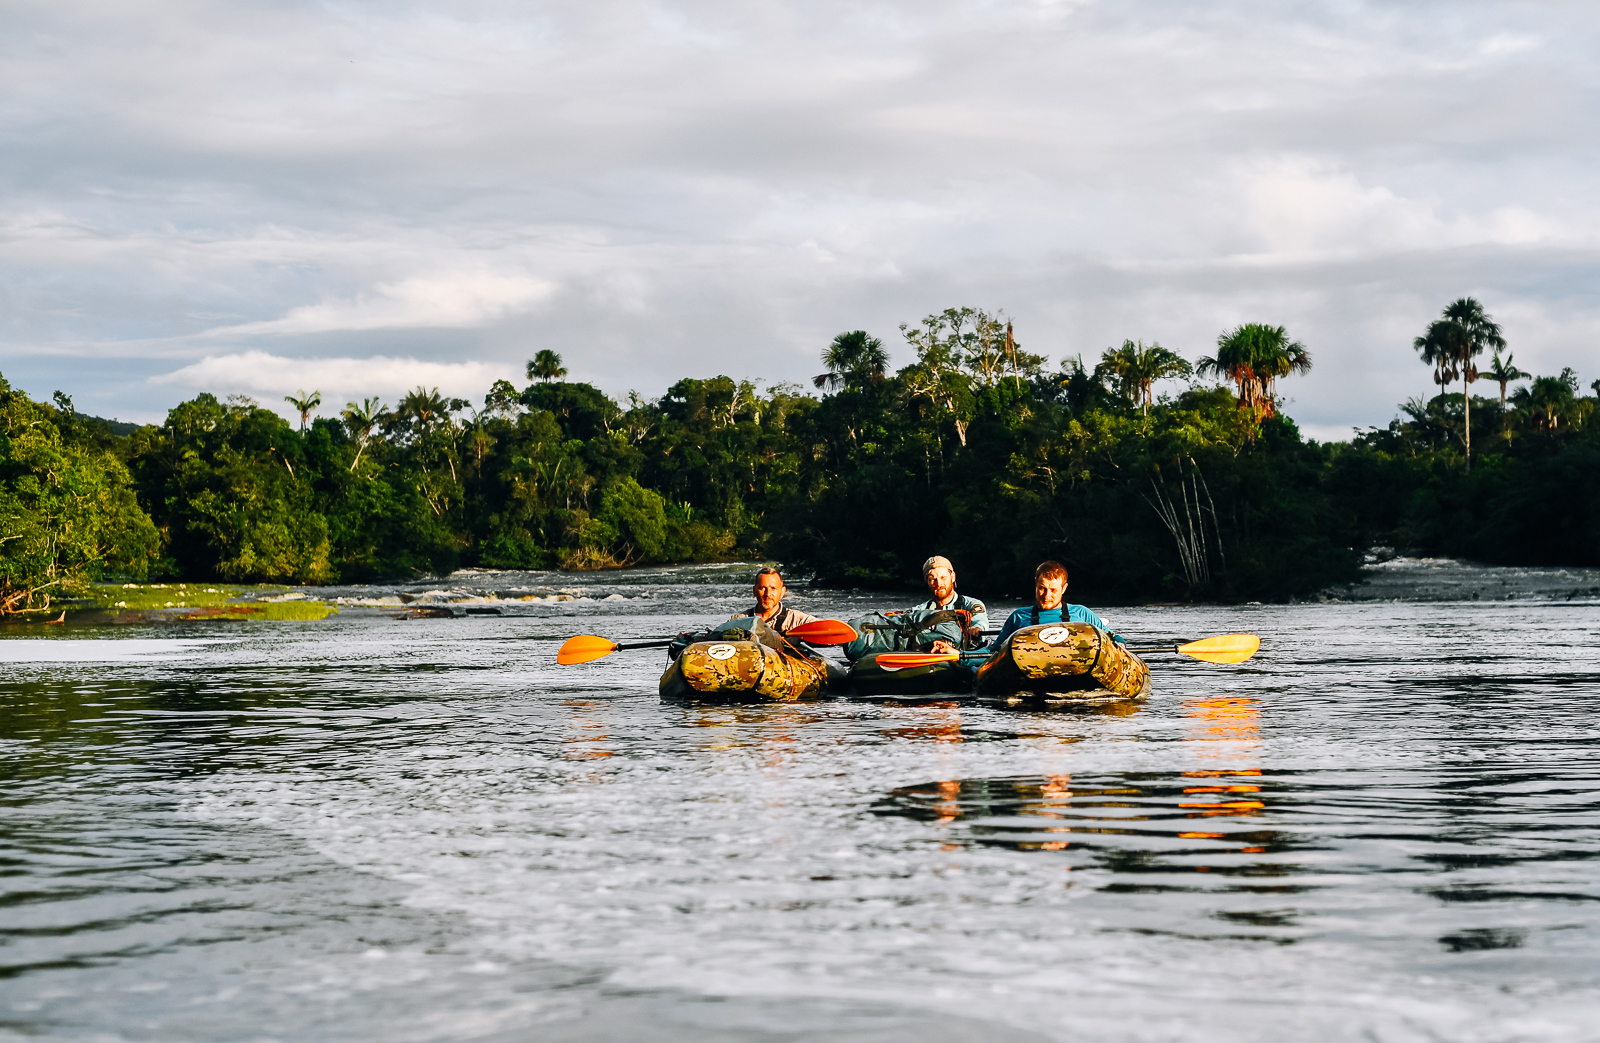 Three of the adventurers paddling on the Amazon